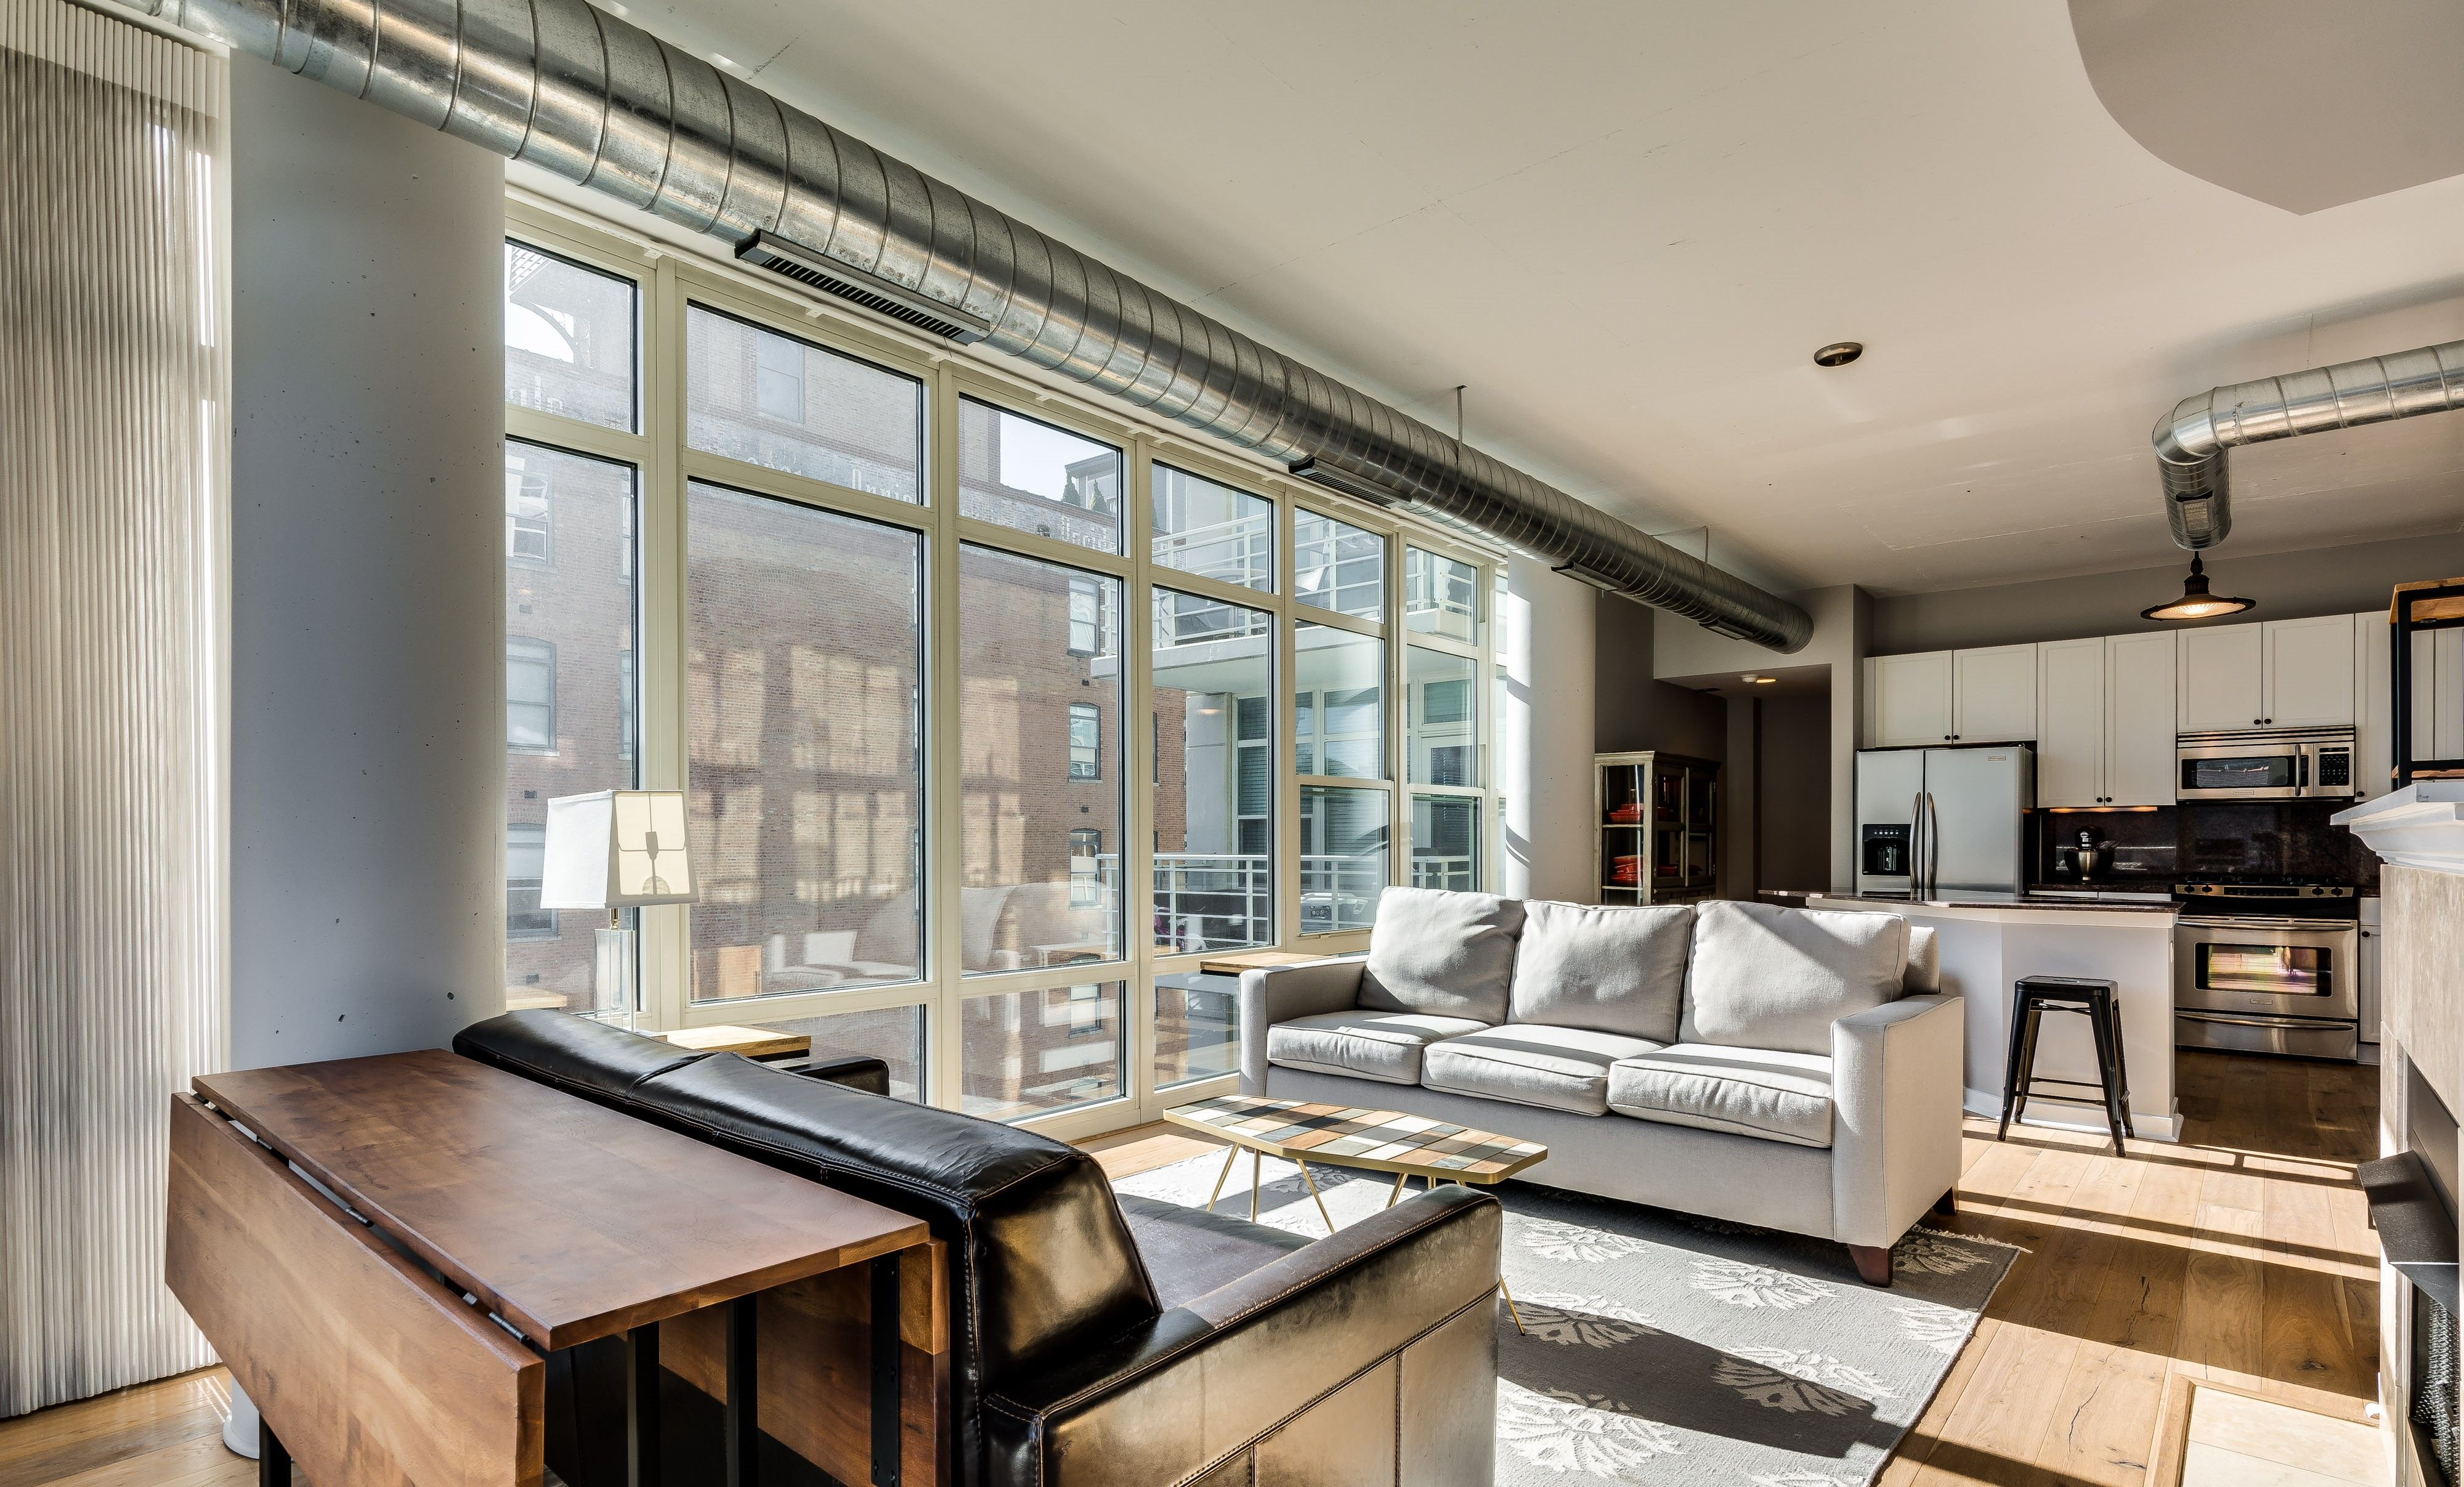 Modern City Apartment With Exposed Ductwork Hardwood Floors